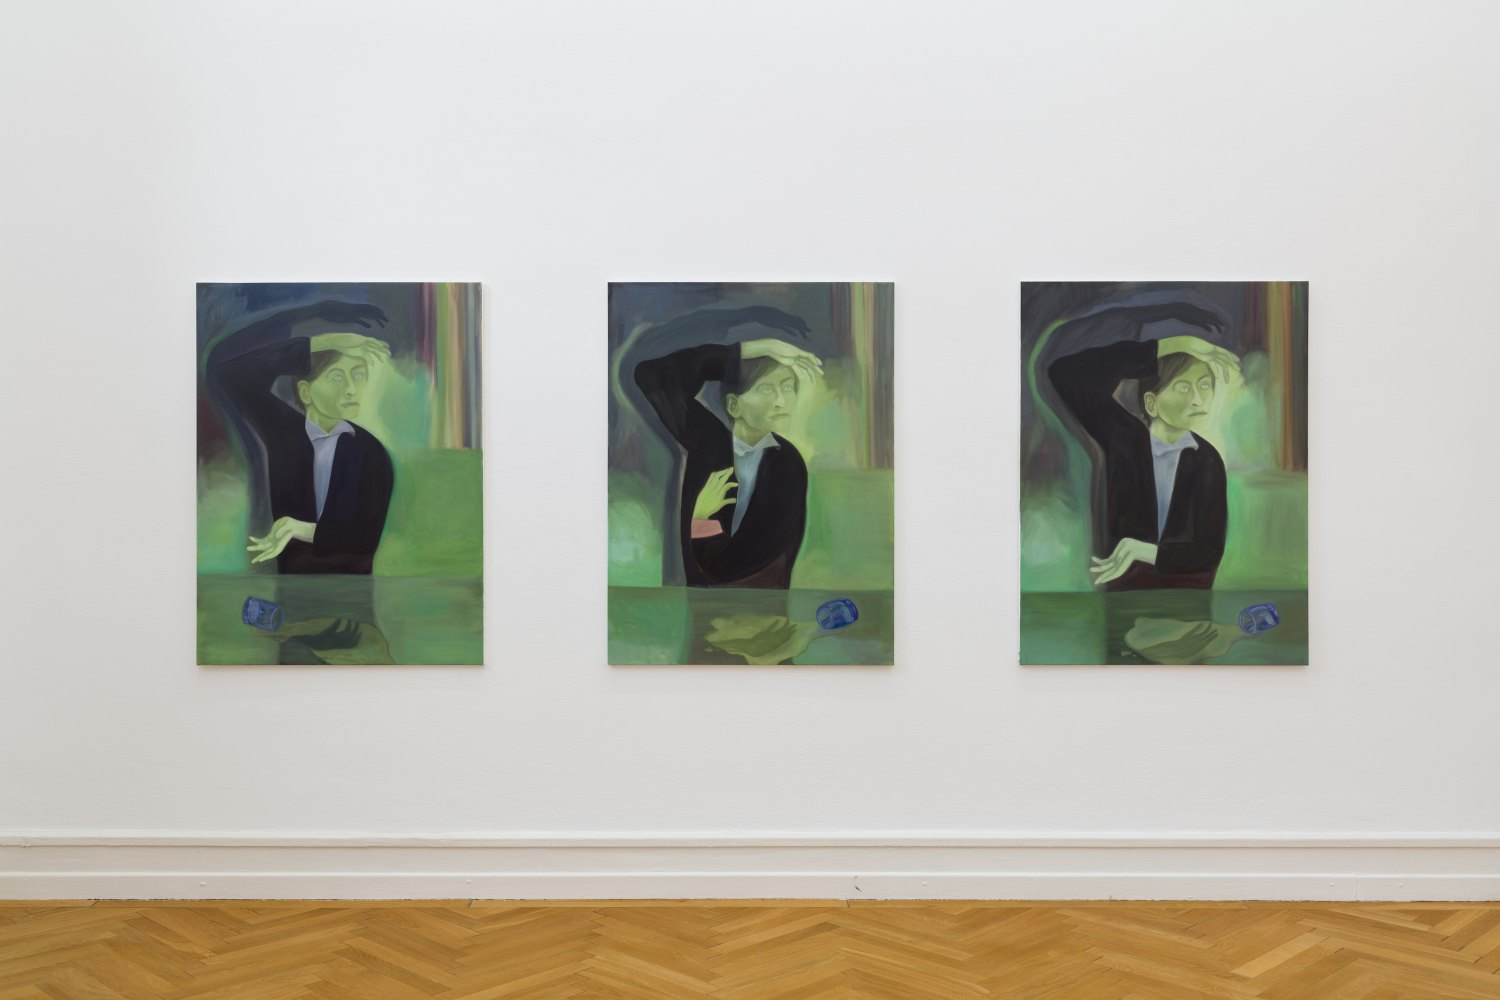 Jill Mulleady The Green Room I & II, 2017 Oil on canvas, 122 x 91 cm each Angst vor Angst Installation view, Kunsthalle Bern